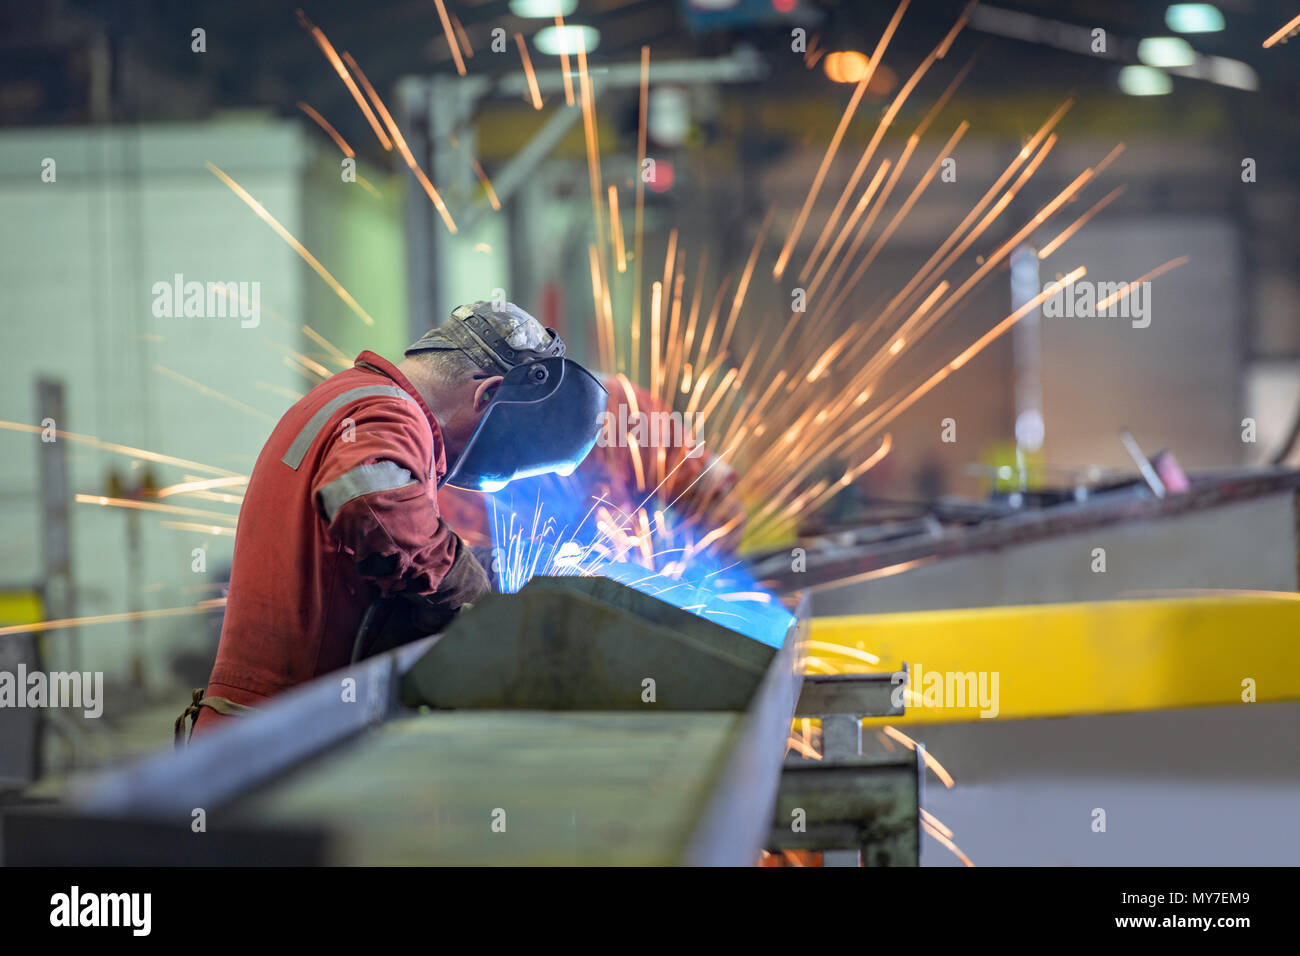 Welder using grinder in trailer factory - Stock Image